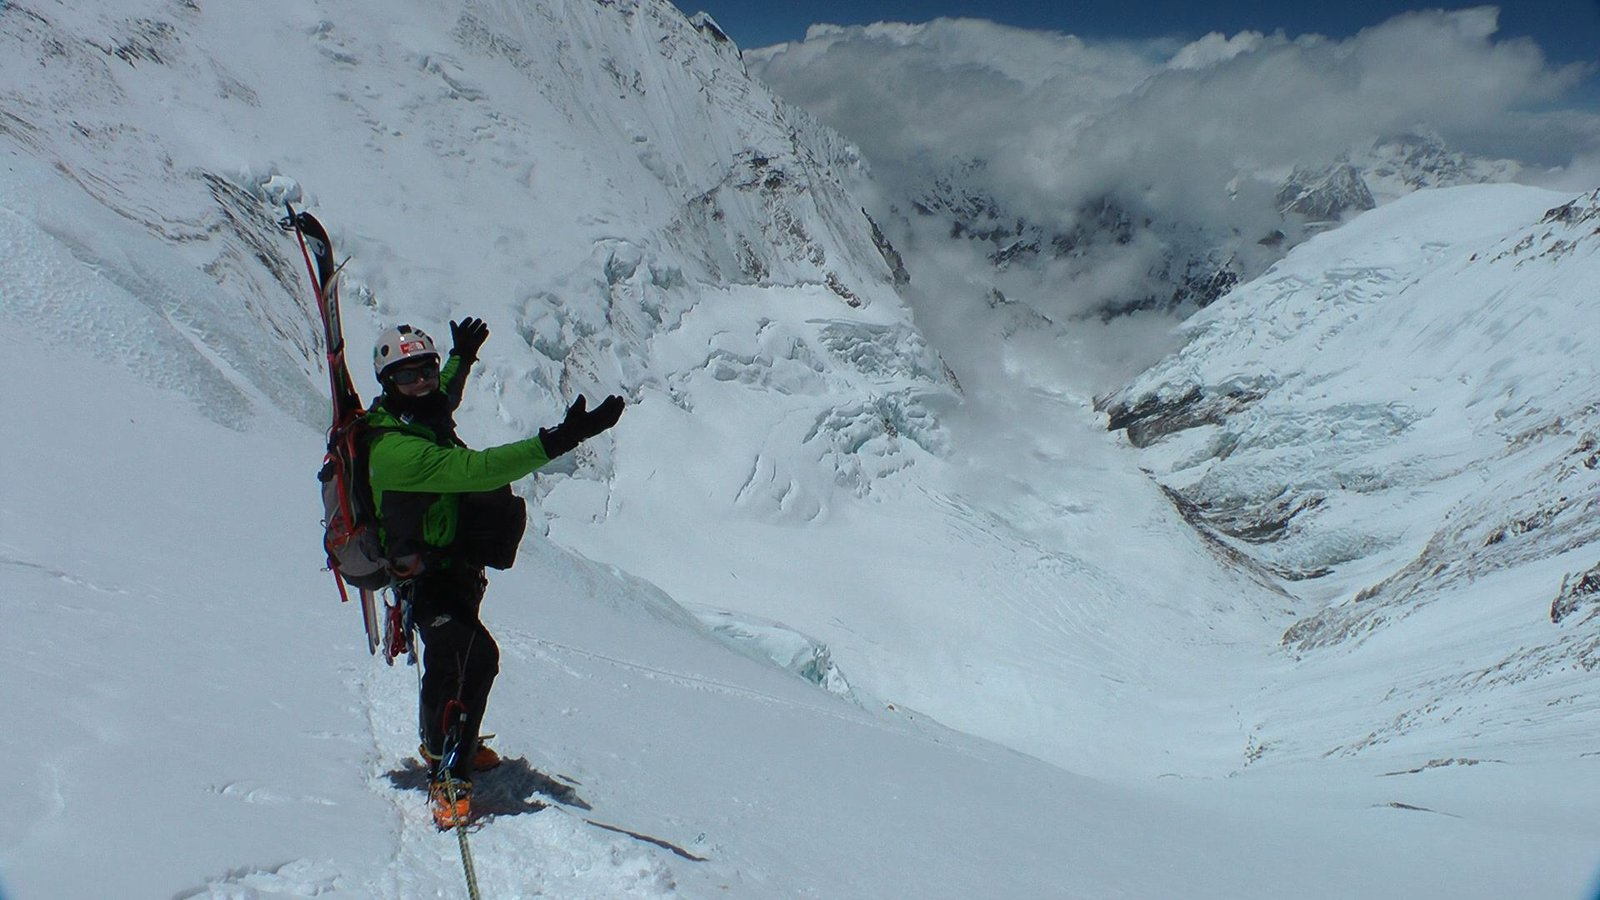 Kris erickson...about to slay 1/2 the lhotse face